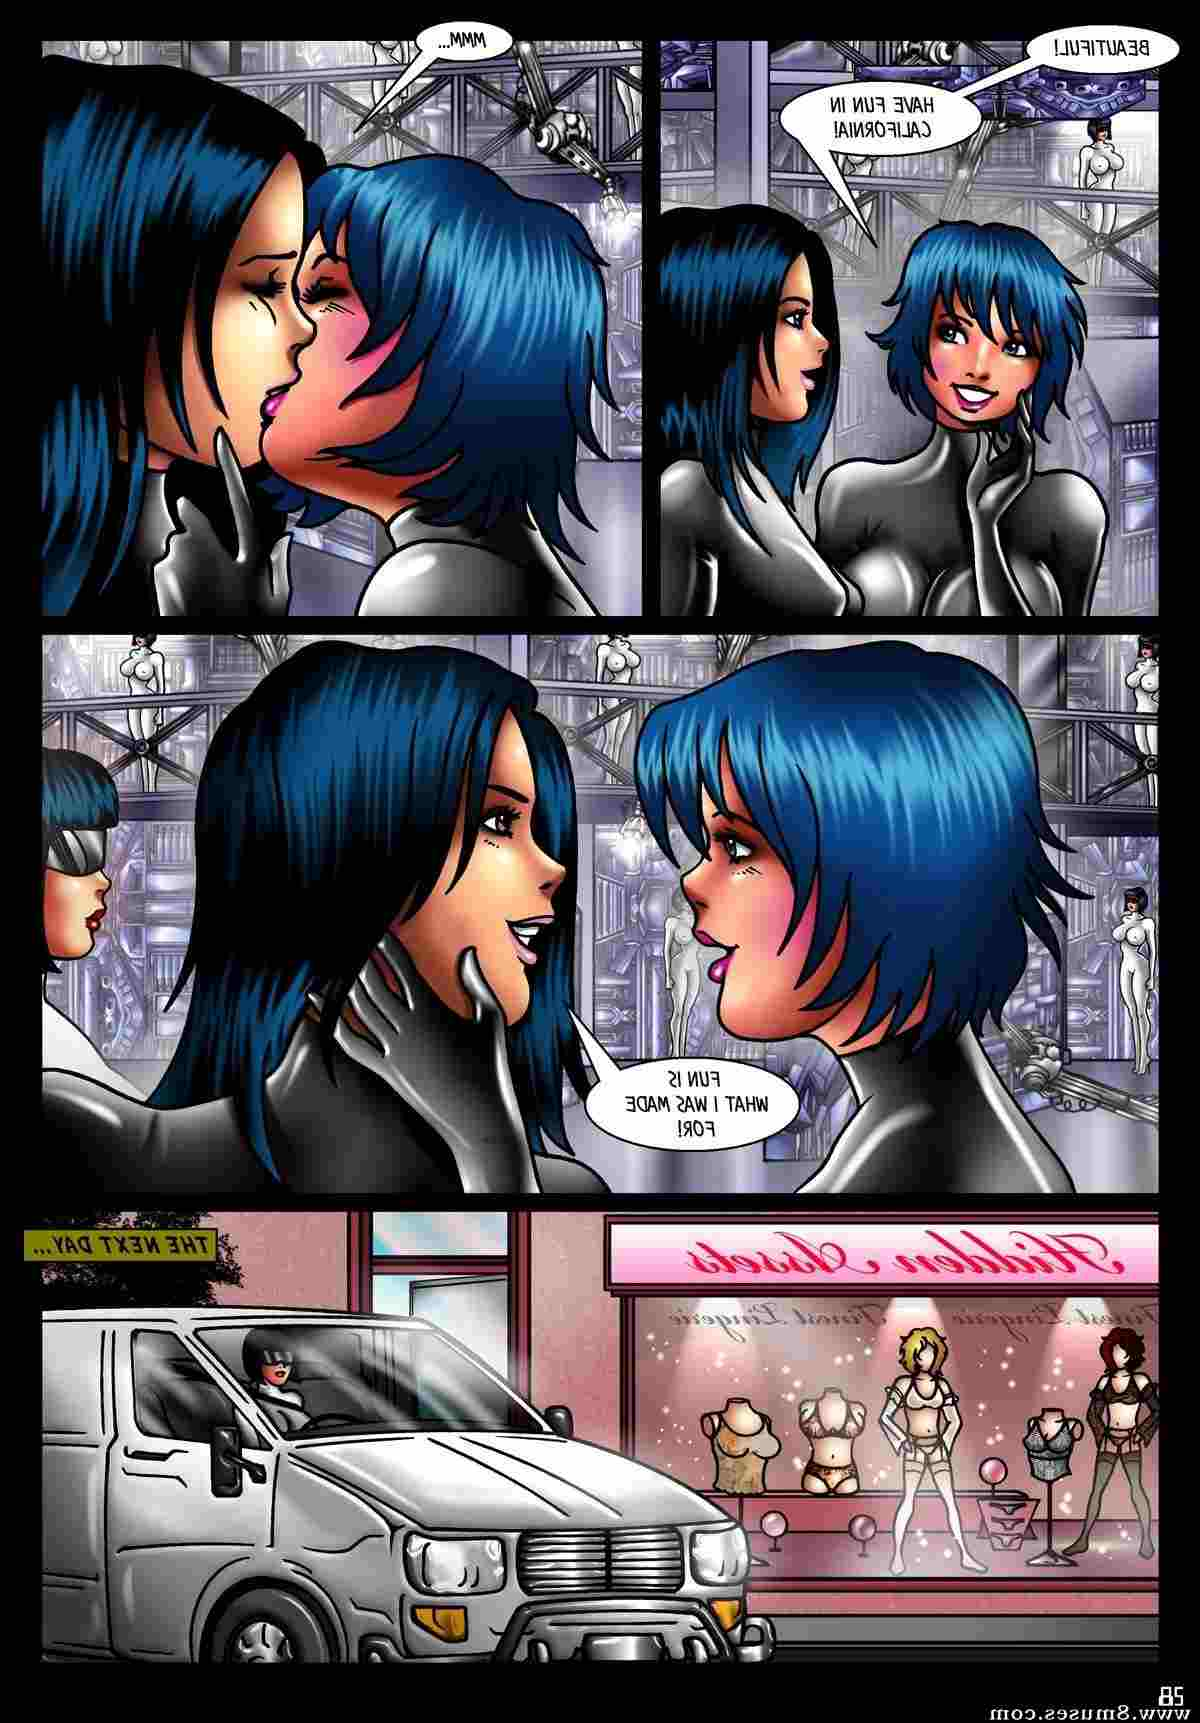 Various-Authors/AB-Lust/Shemale-Android-Sex-Sirens-Renegades Shemale_Android_Sex_Sirens_-_Renegades__8muses_-_Sex_and_Porn_Comics_29.jpg